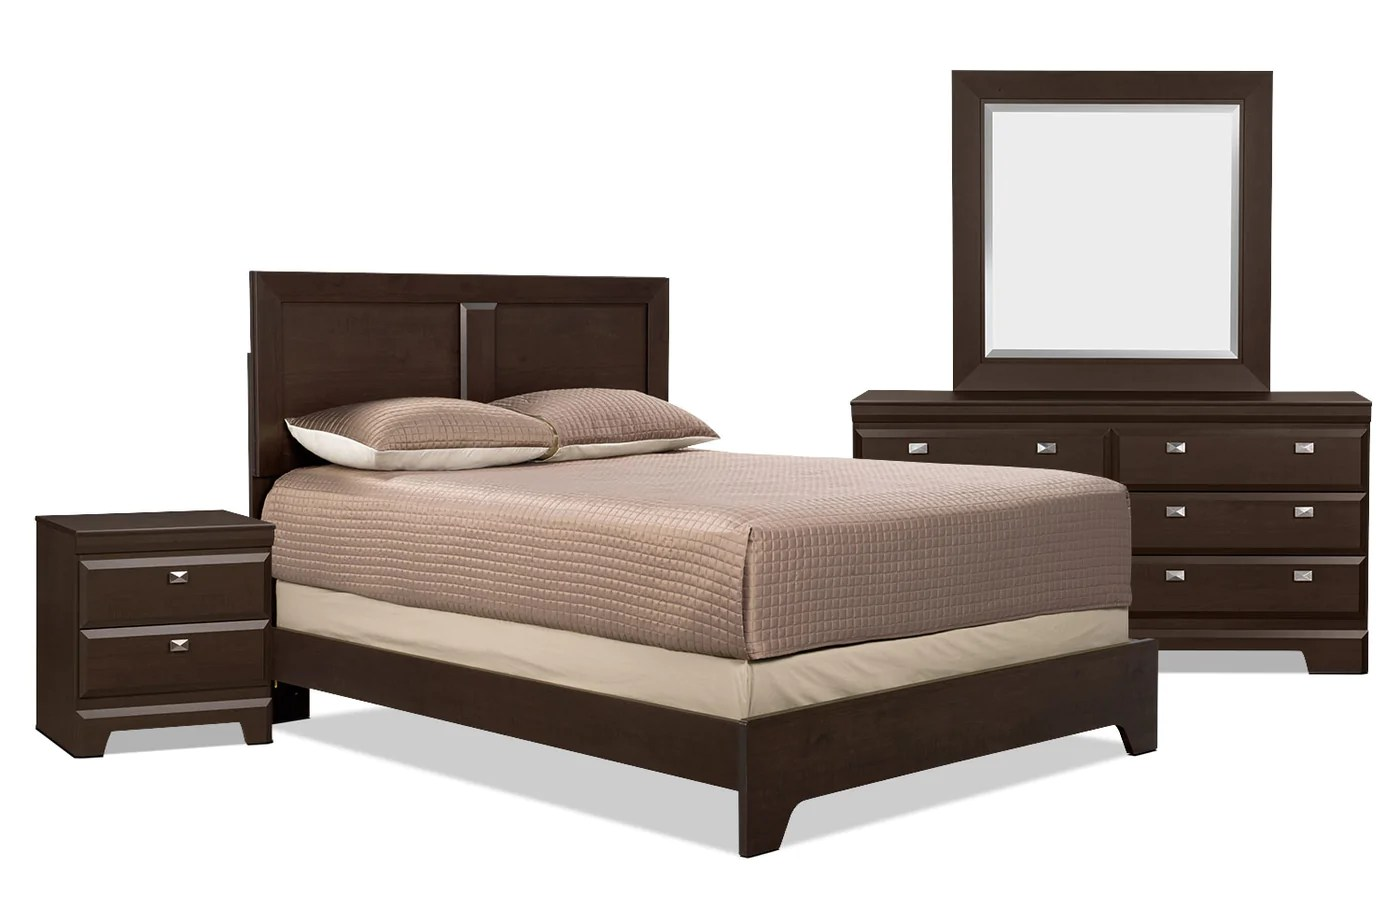 Meuble Aubaine Set De Chambre Yorkdale 6 Piece Queen Bedroom Package